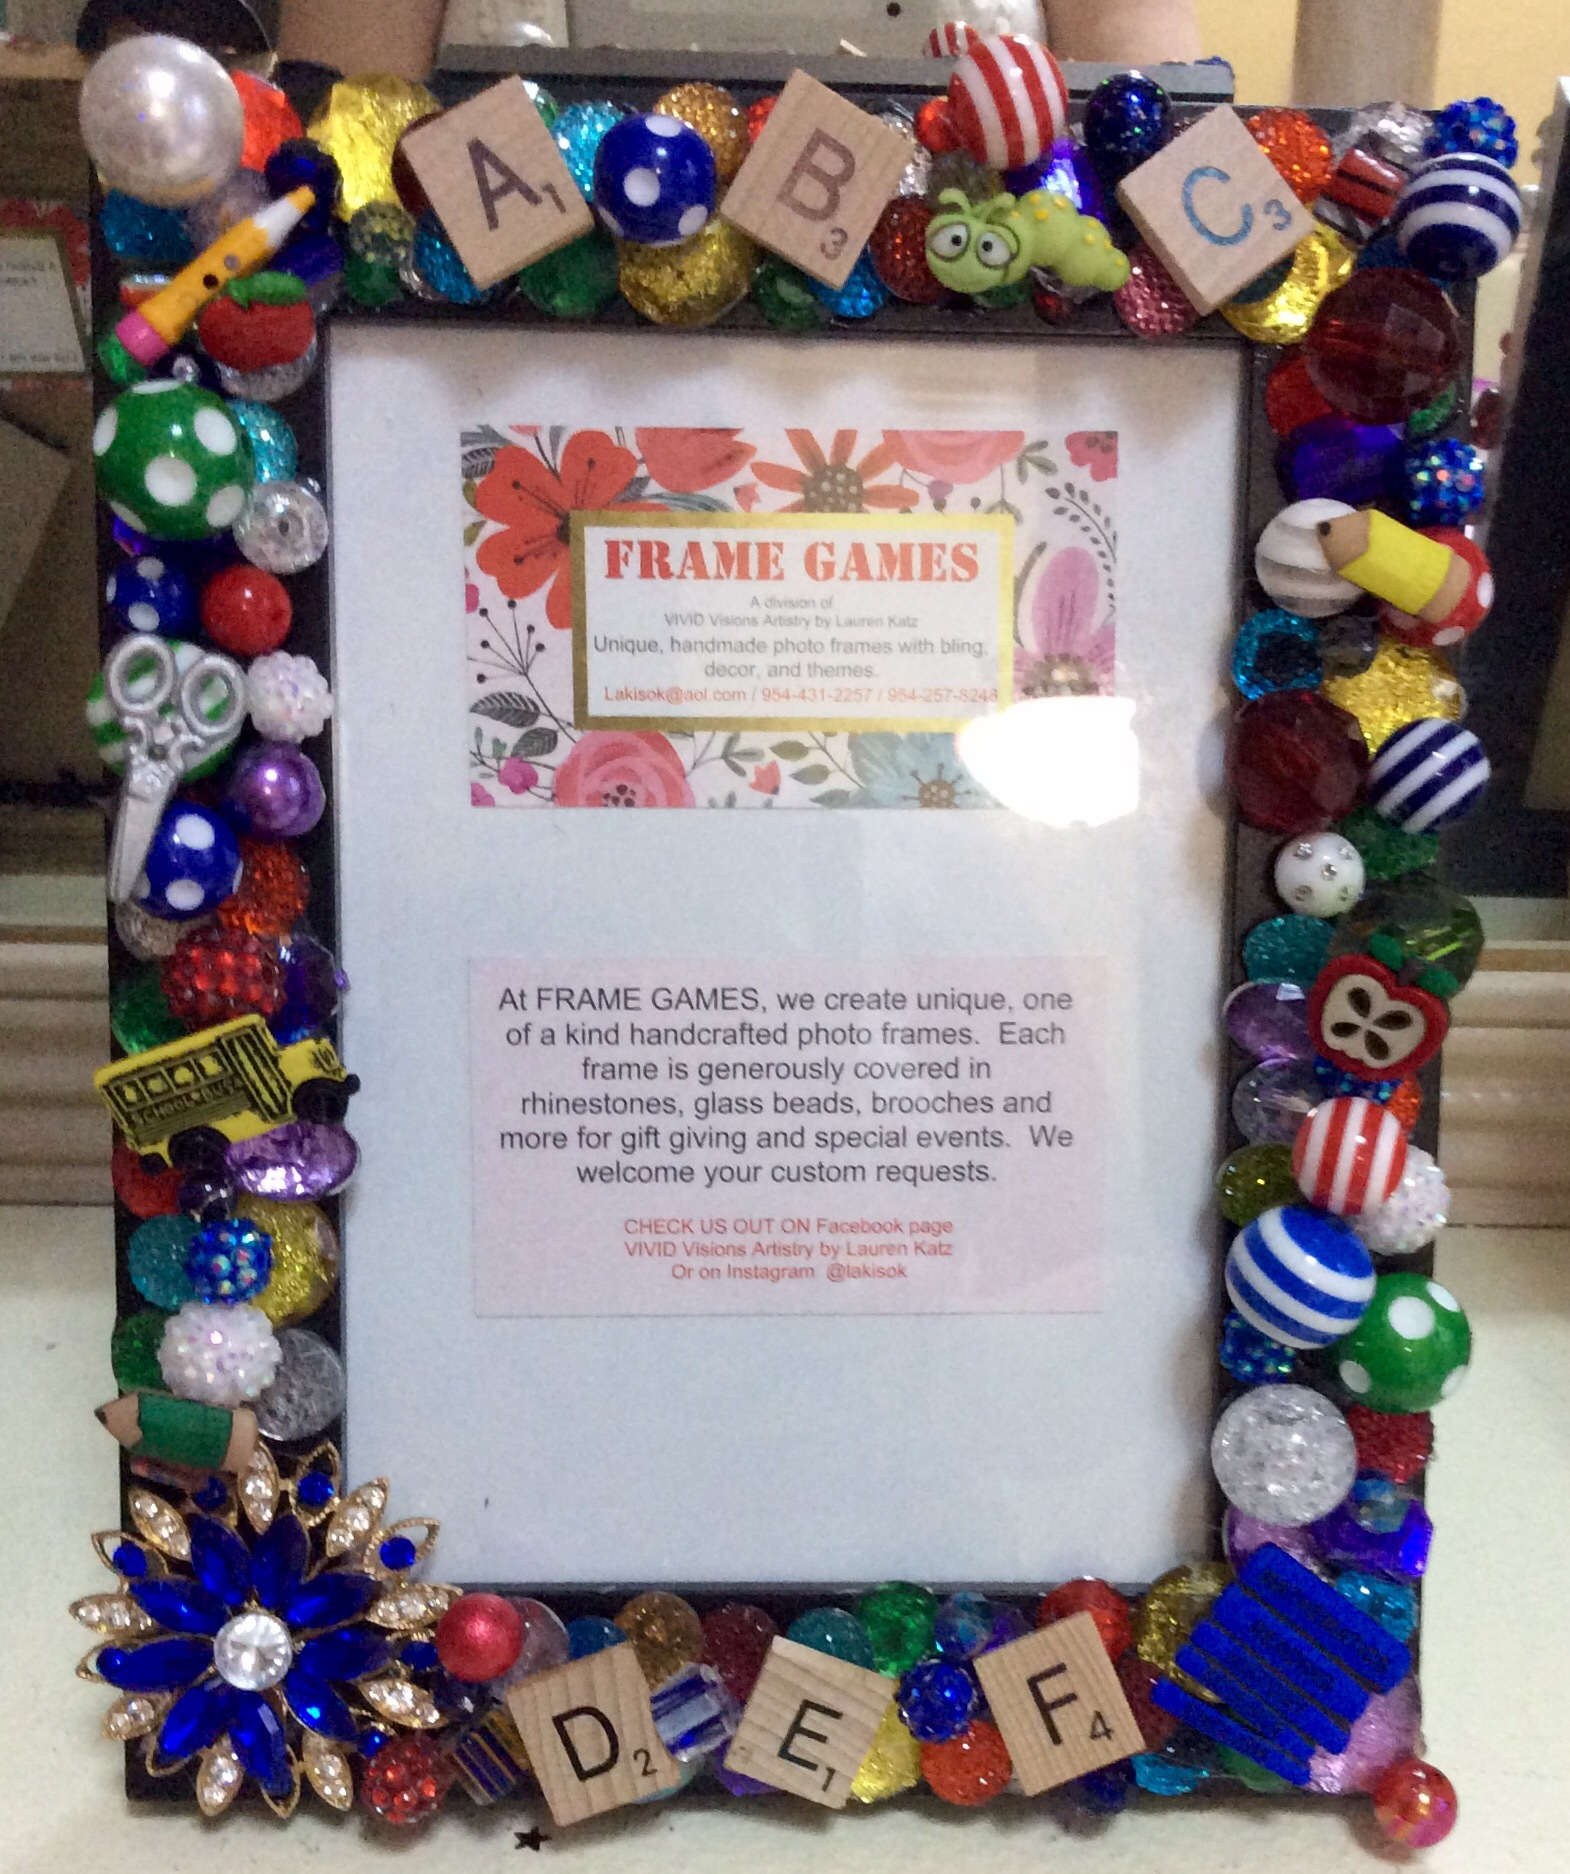 JUST FOR TEACHER 5x7 picture frame FOR SALE: $39.00 plus flat rate shipping and tax  by lakisok